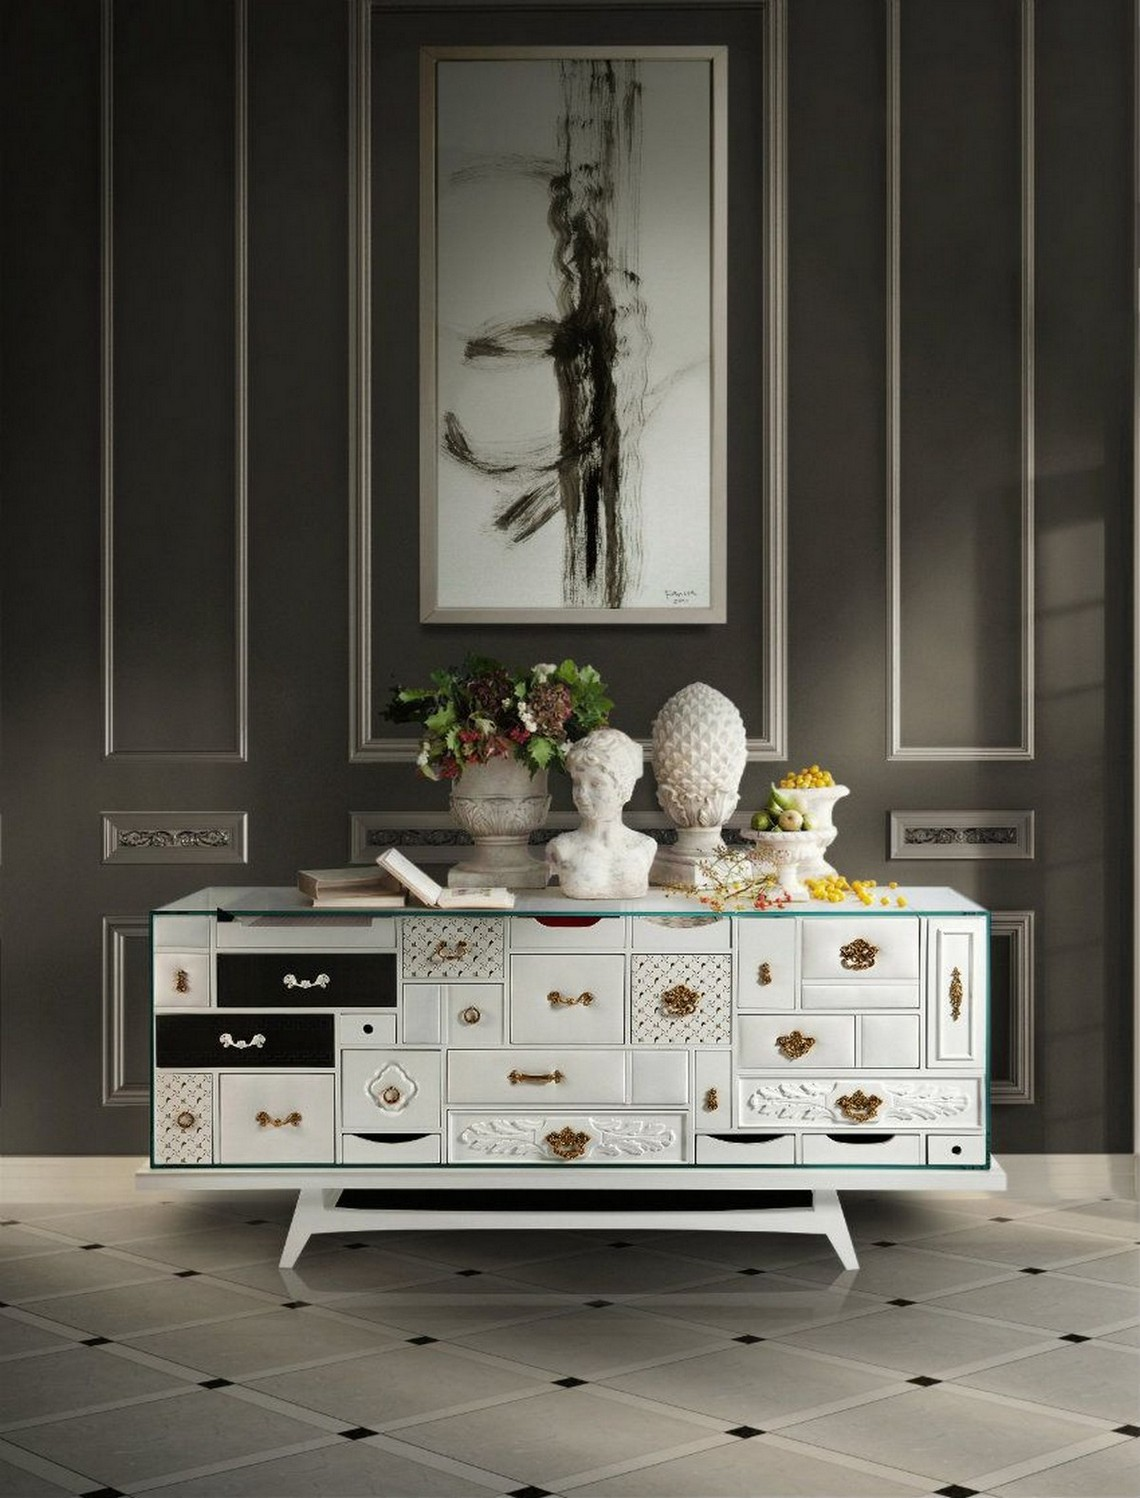 Top Exclusive Sideboards exclusive sideboards Top Exclusive Sideboards mondrian white 2